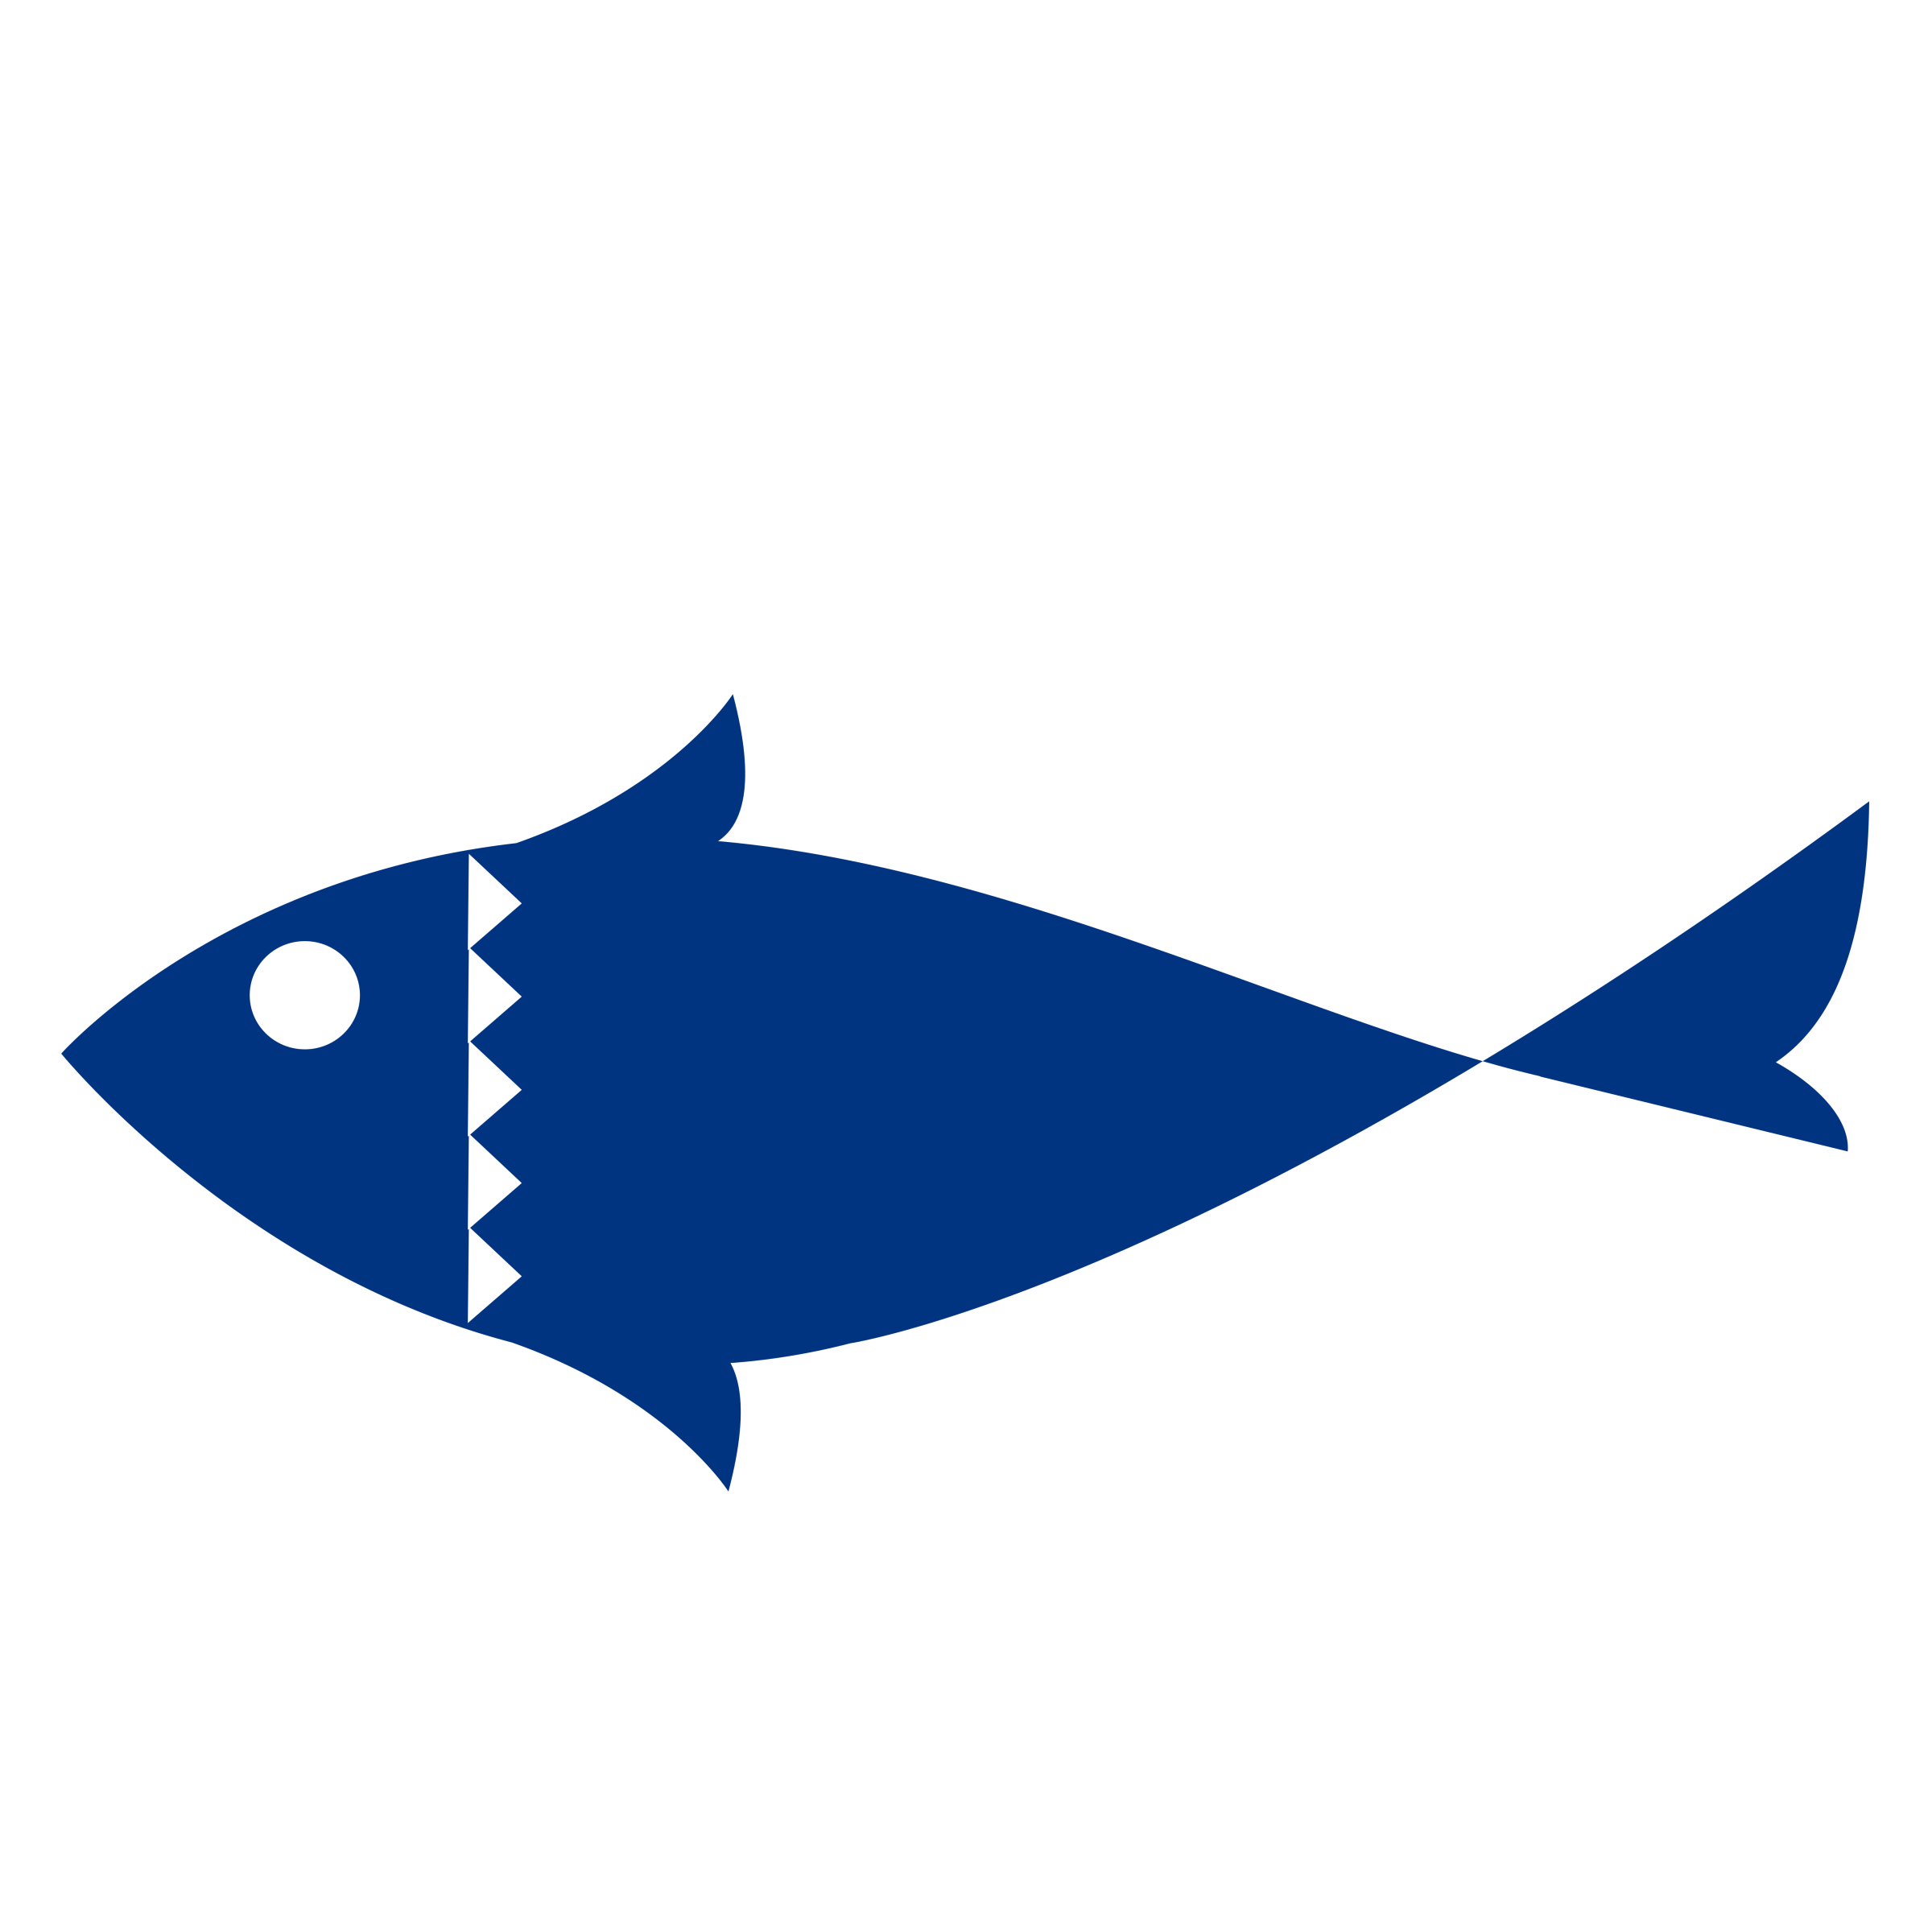 Tuna clipart svg. Fish one color flat